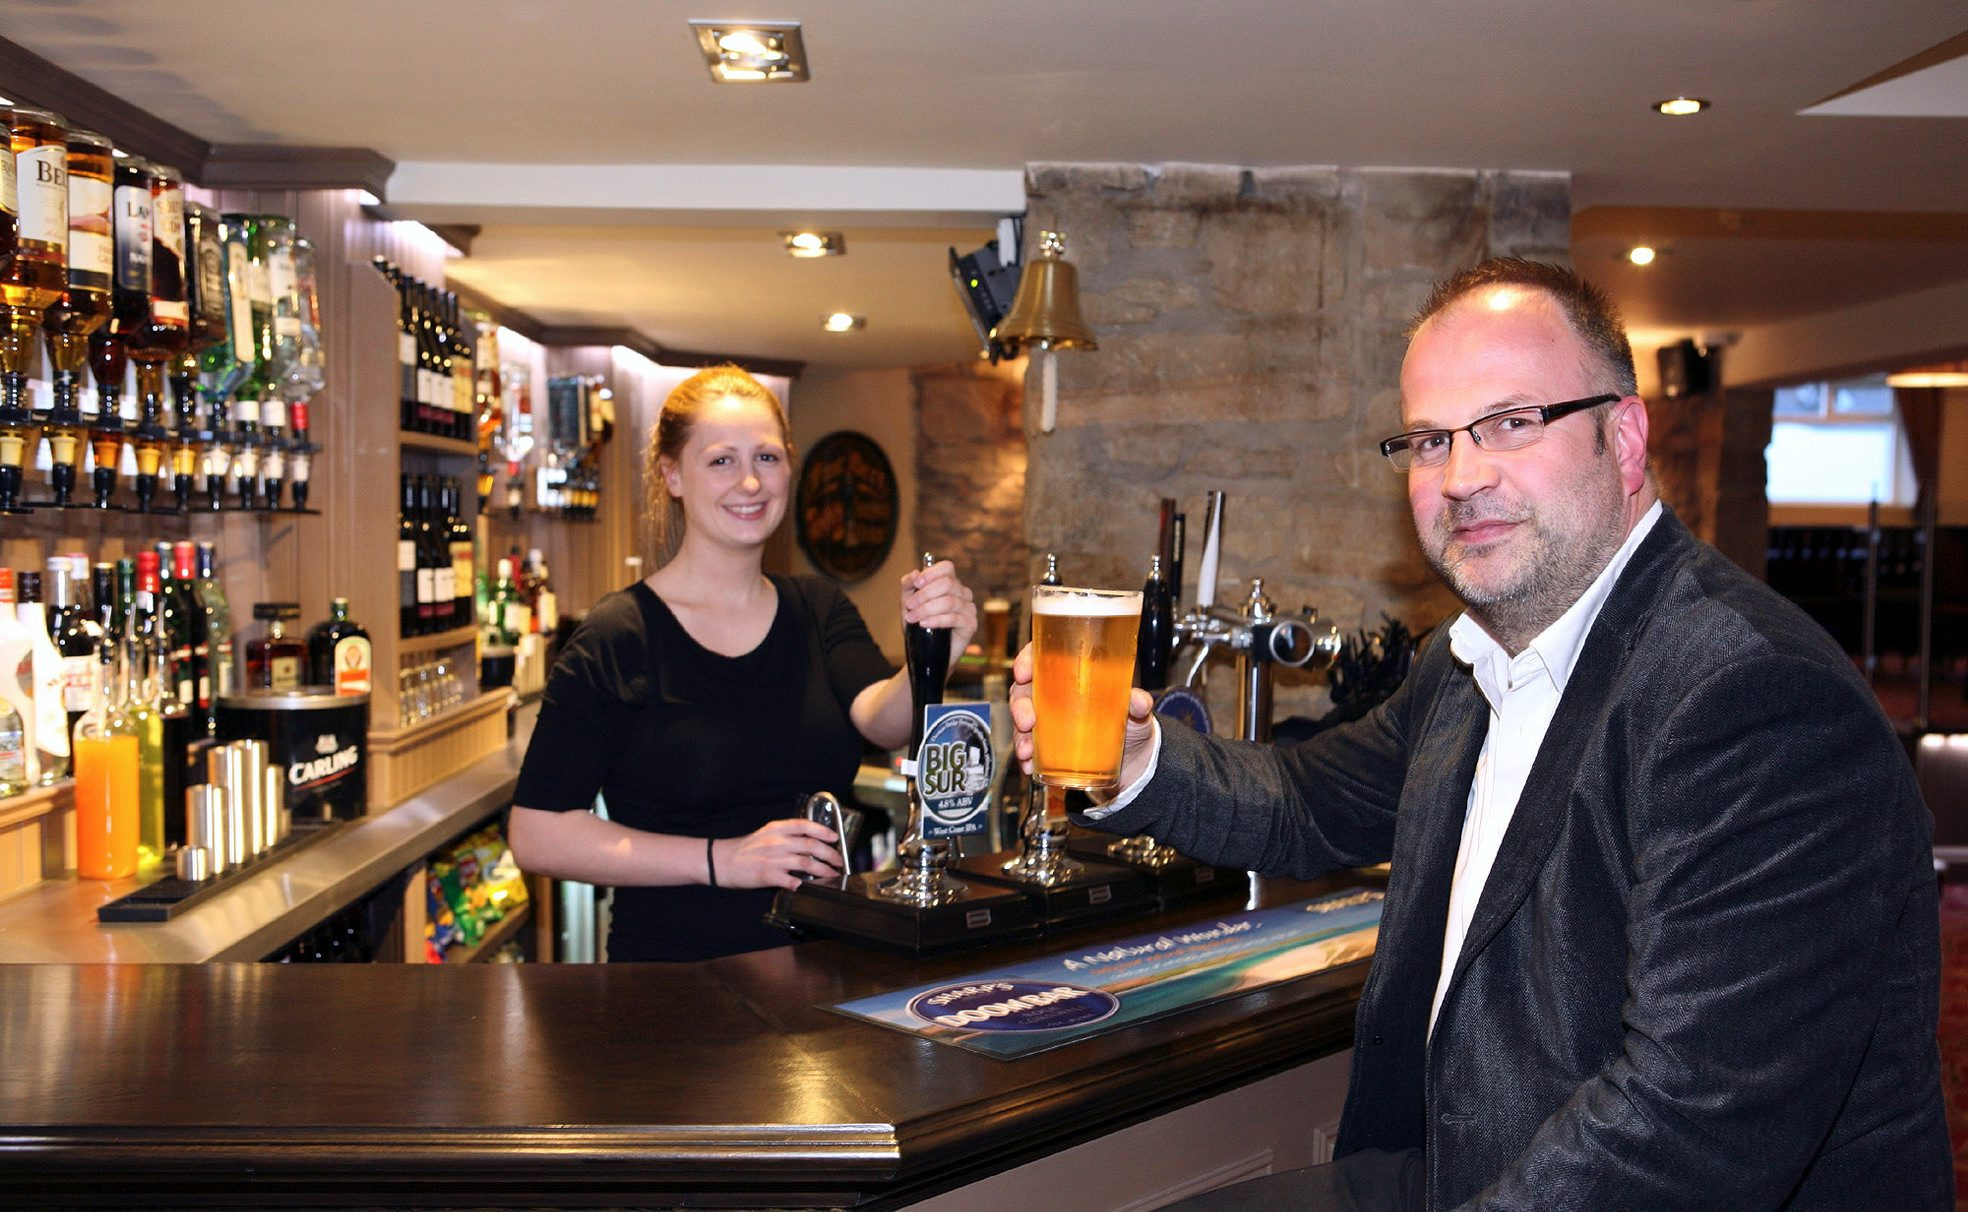 Halliwell pub the Ainsworth Arms re-opens